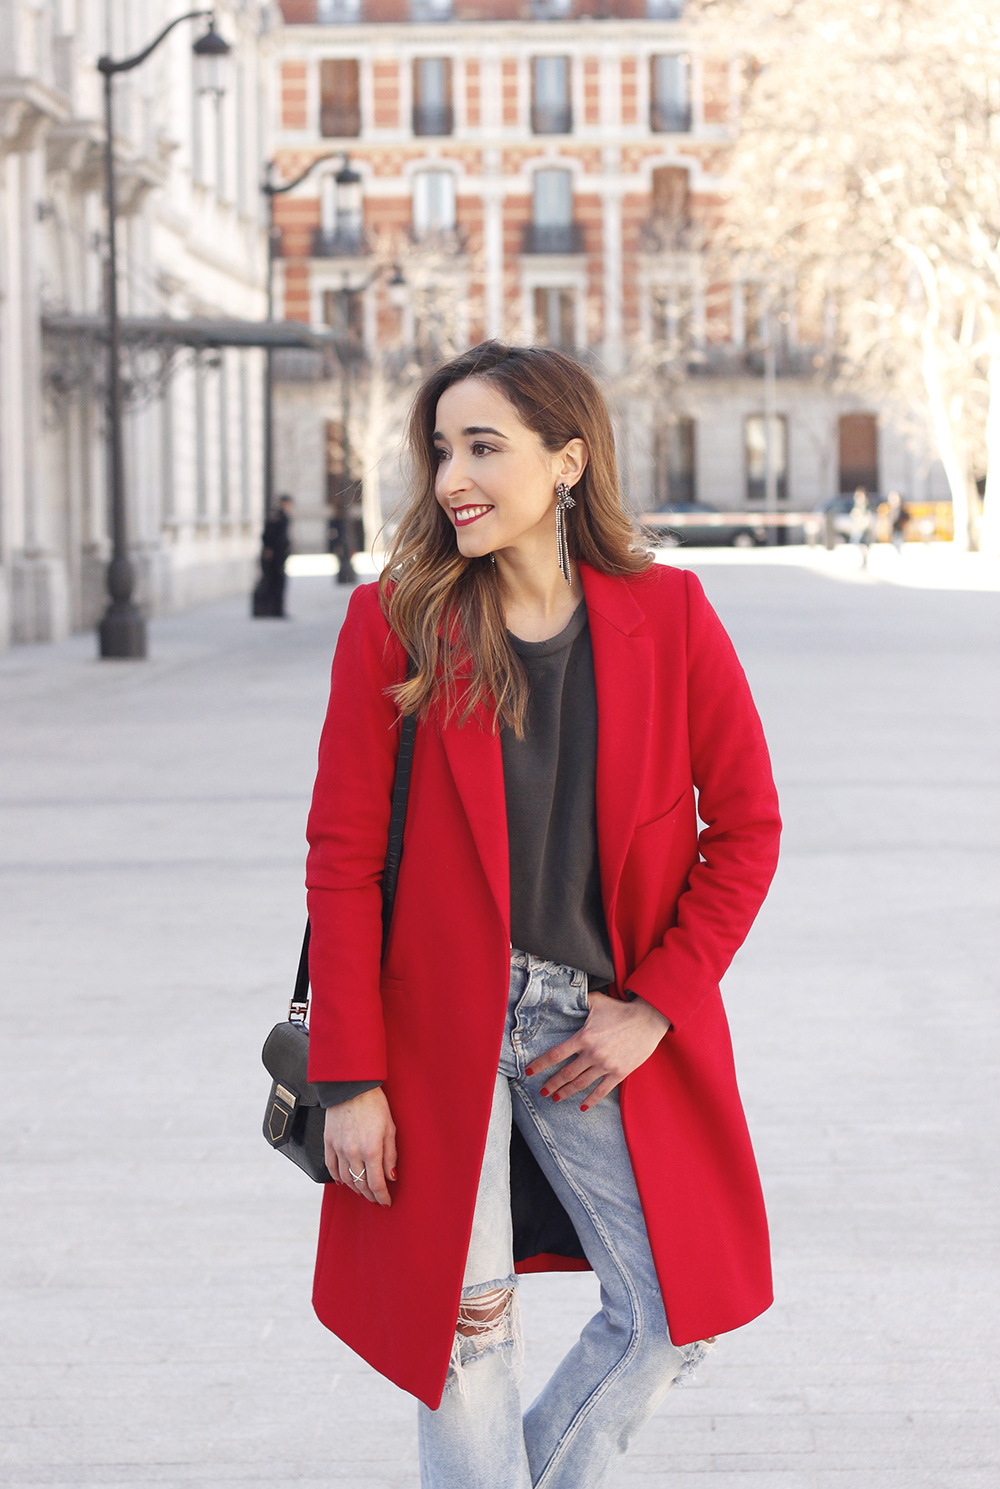 red coat givenchy bag ripped jeans leopard heels winter outfit look de invierno10